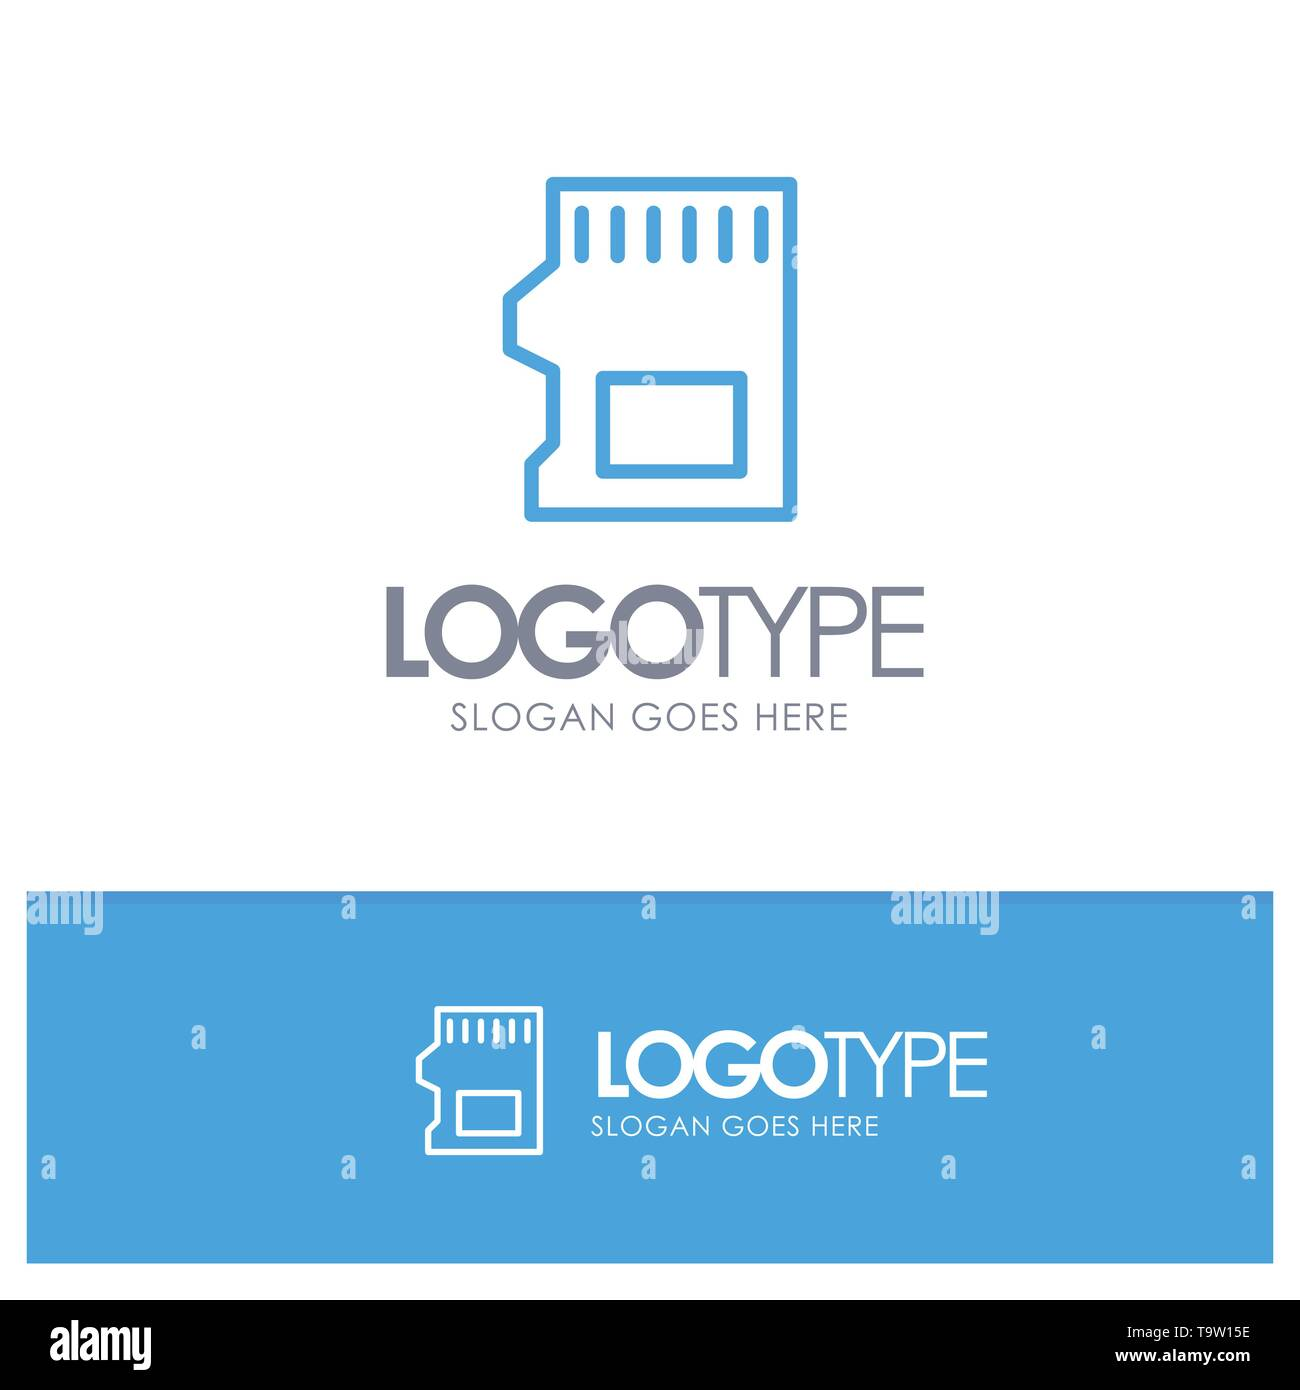 SD Card, SD, Storage, Data Blue Outline Logo Place for Tagline - Stock Image